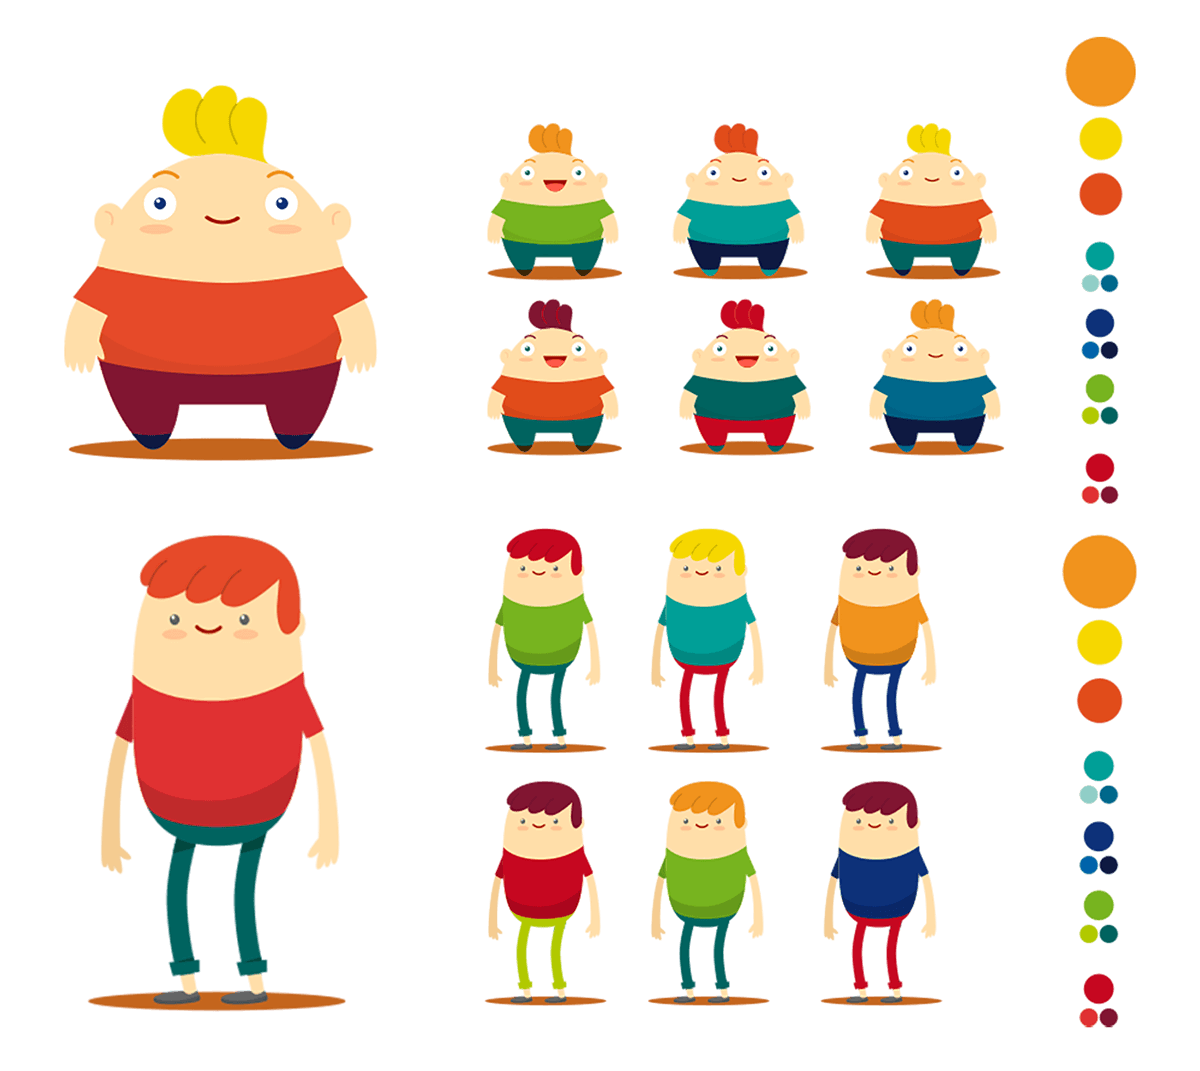 GSK characters